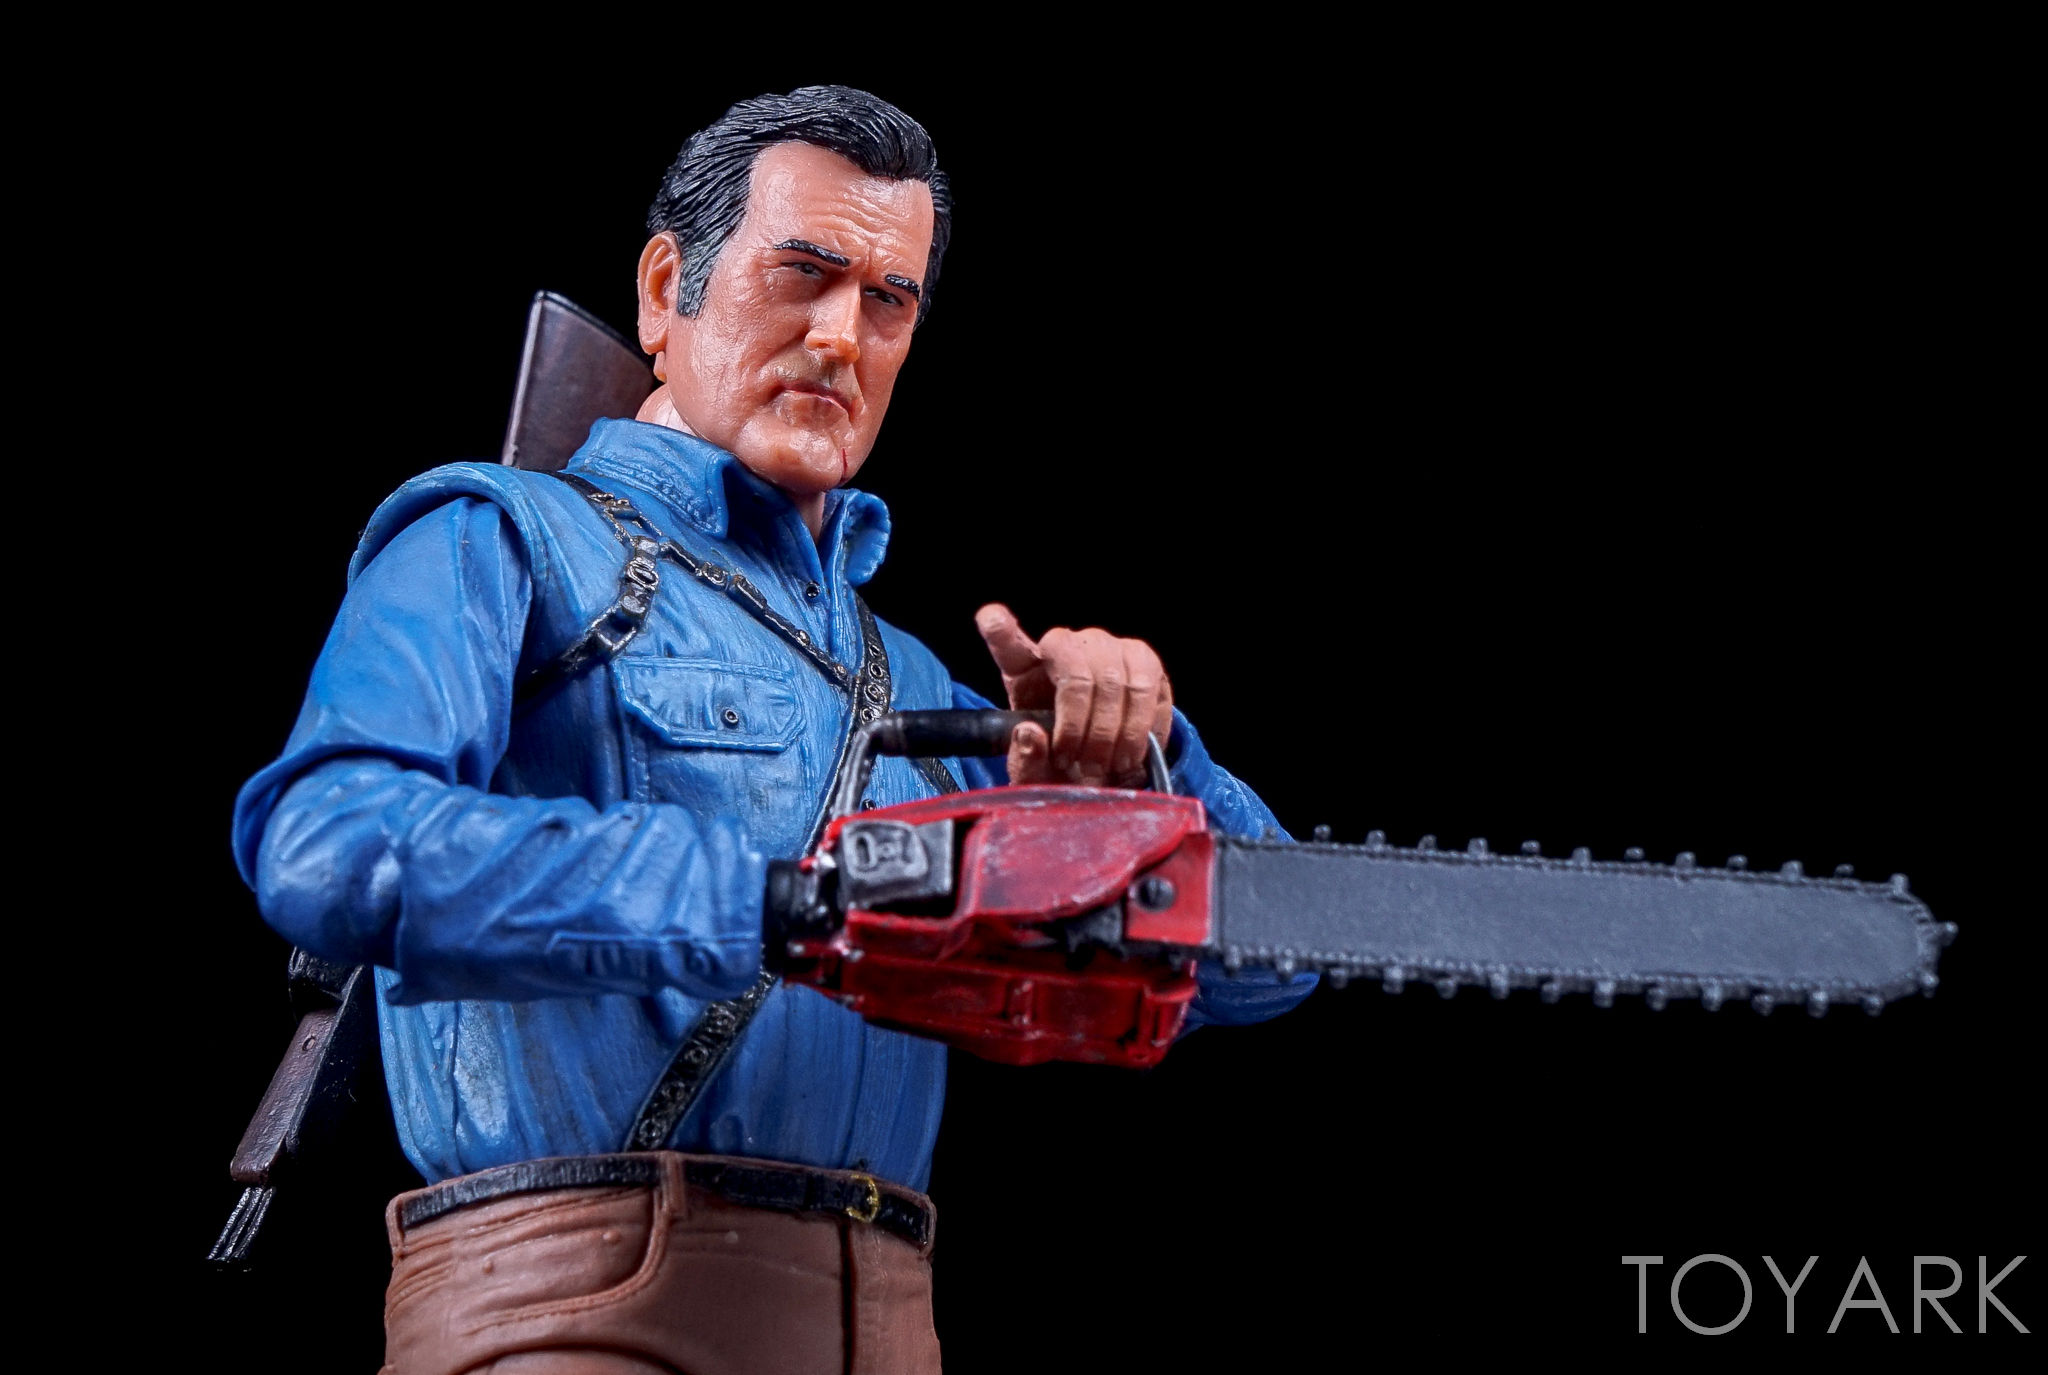 http://news.toyark.com/wp-content/uploads/sites/4/2016/09/Ash-vs-Evil-Dead-Series-1-NECA-102.jpg